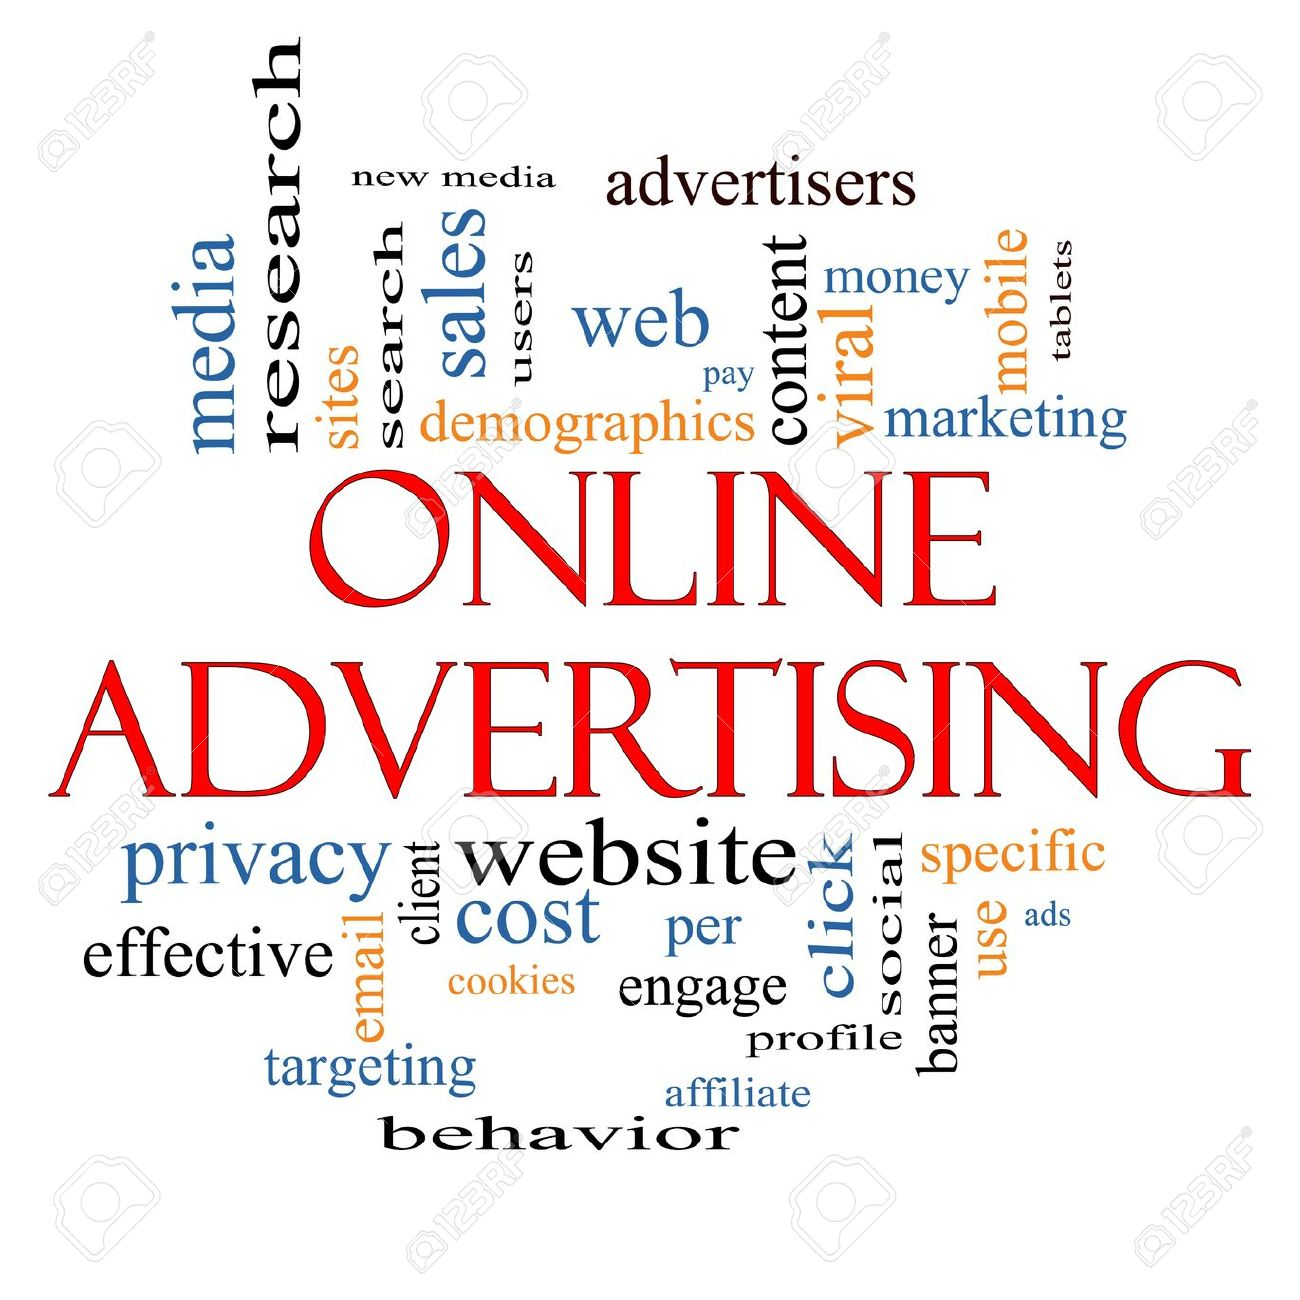 online advertising Online marketing is a set of tools and methodologies used for promoting products and services through the internet online marketing includes a wider range of marketing elements than traditional business marketing due to the extra channels and marketing mechanisms available on the internet.